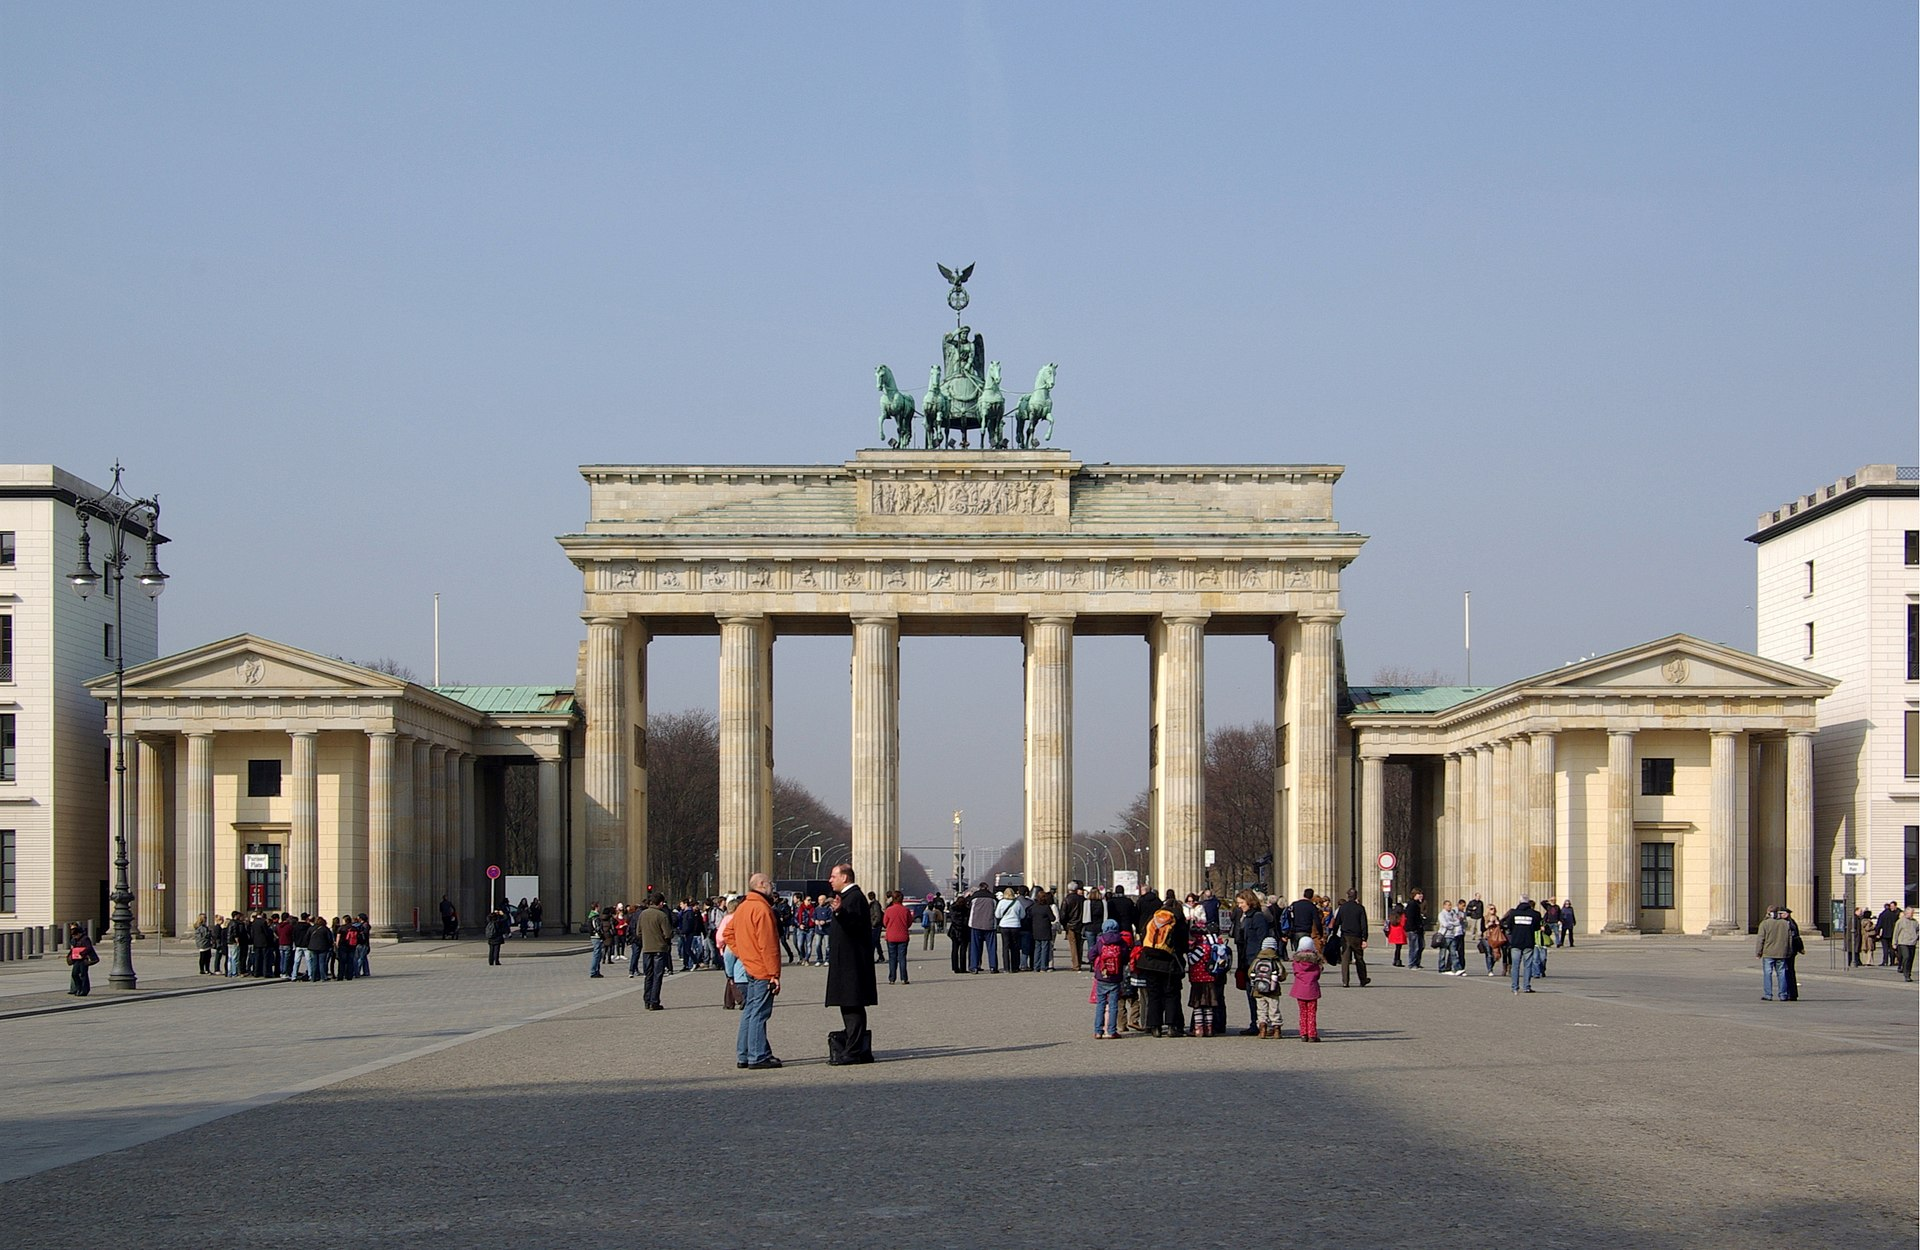 Brandenburger Tor Wikipedia